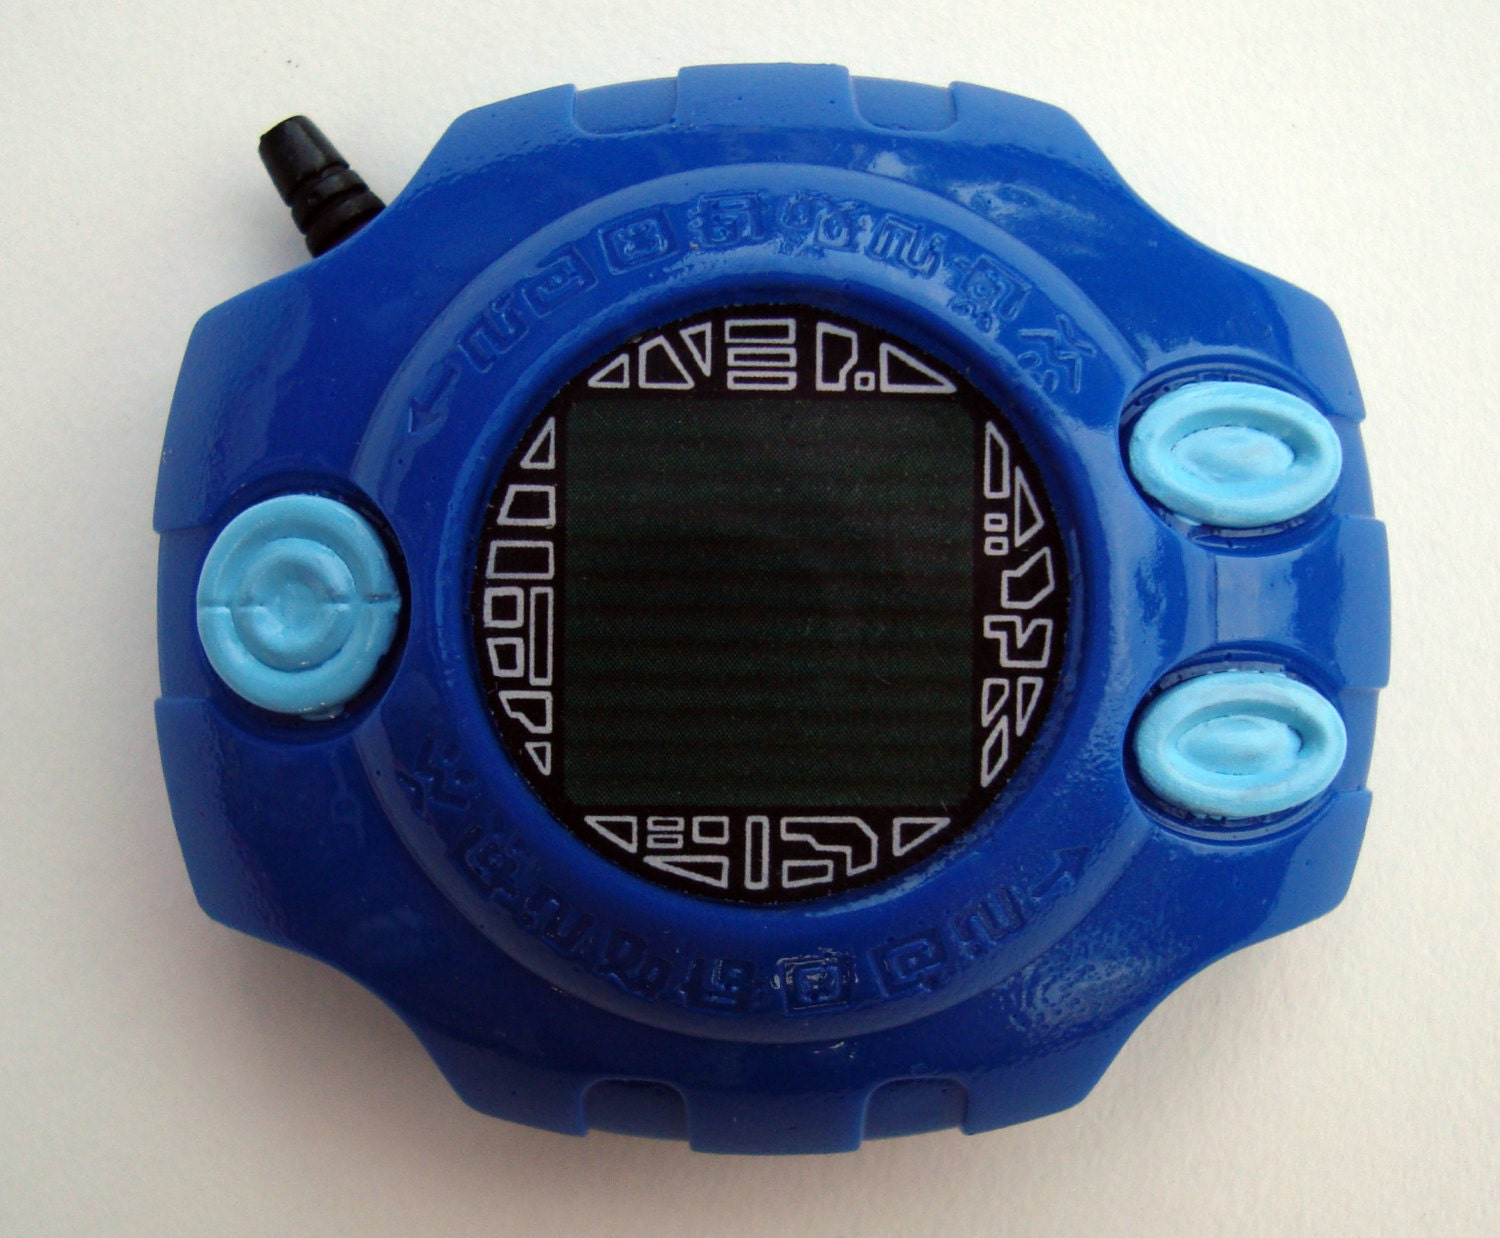 Digimon Digivice Guide Digimon d2 Digivice Season